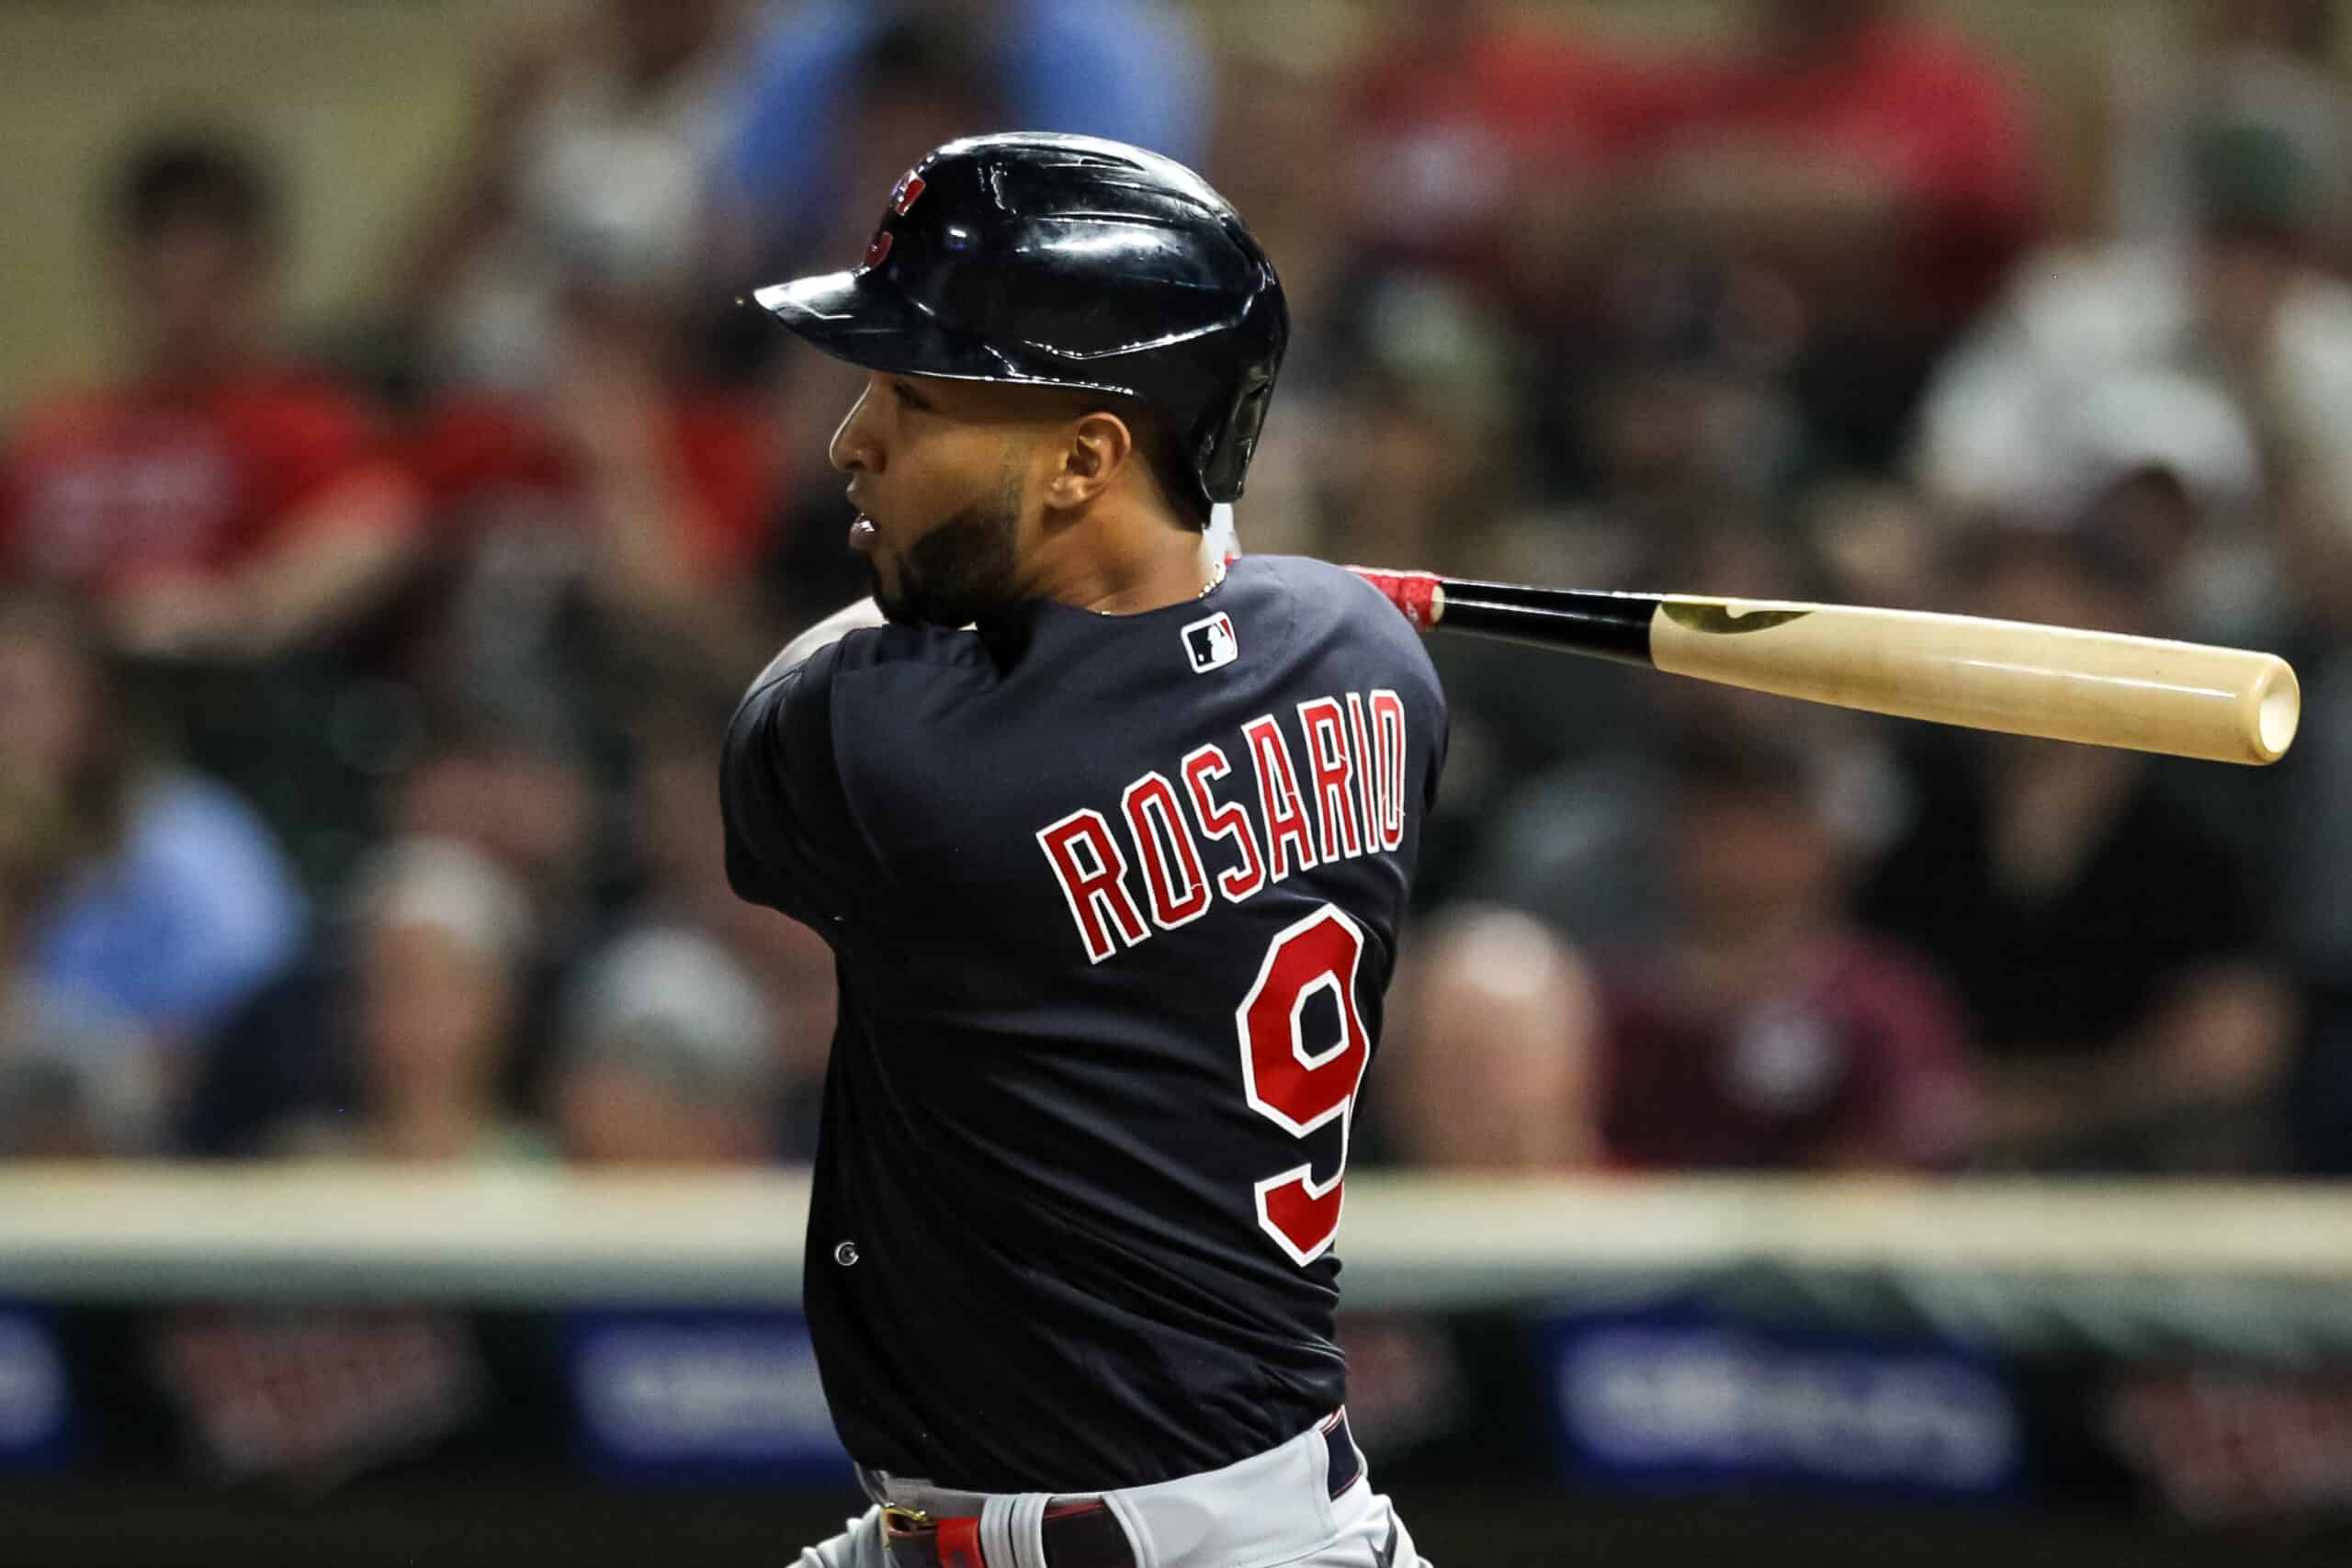 Eddie Rosario #9 of the Cleveland Indians hits a two-run single against the Minnesota Twins in the eighth inning at Target Field on June 24, 2021 in Minneapolis, Minnesota. The Indians defeated the Twins 4-1.